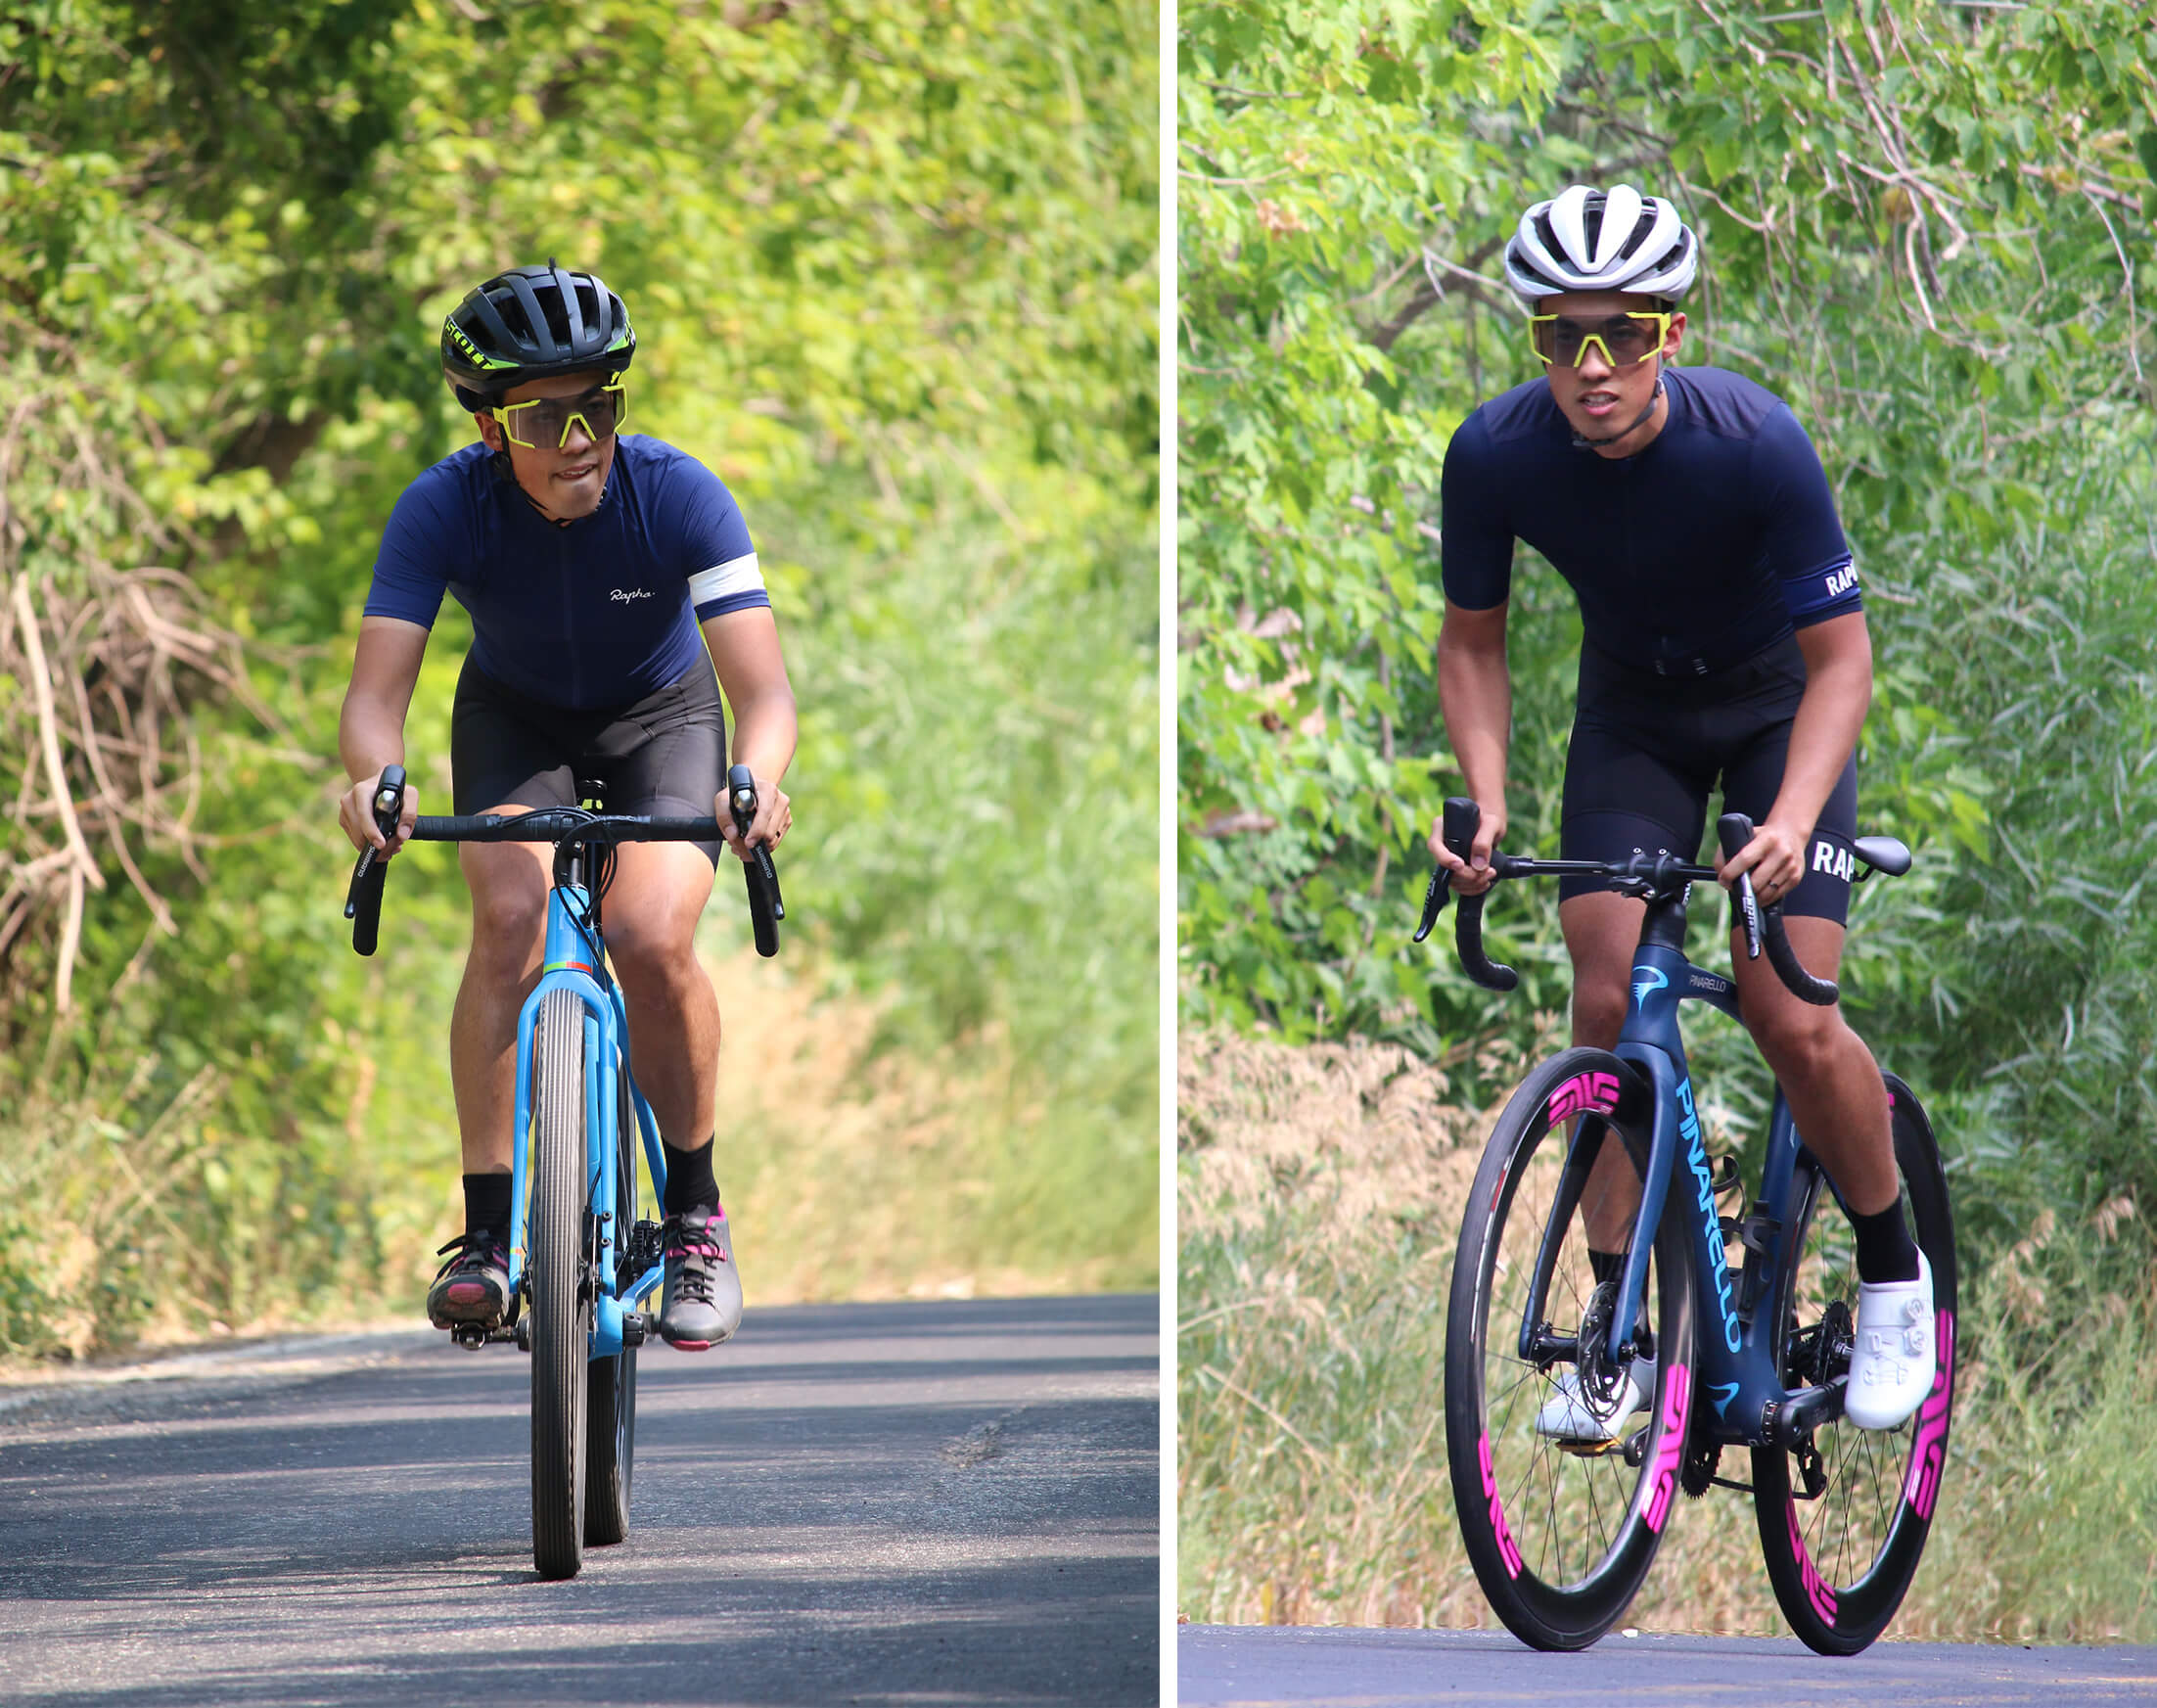 Rapha Core vs Team - Contender Bicycles